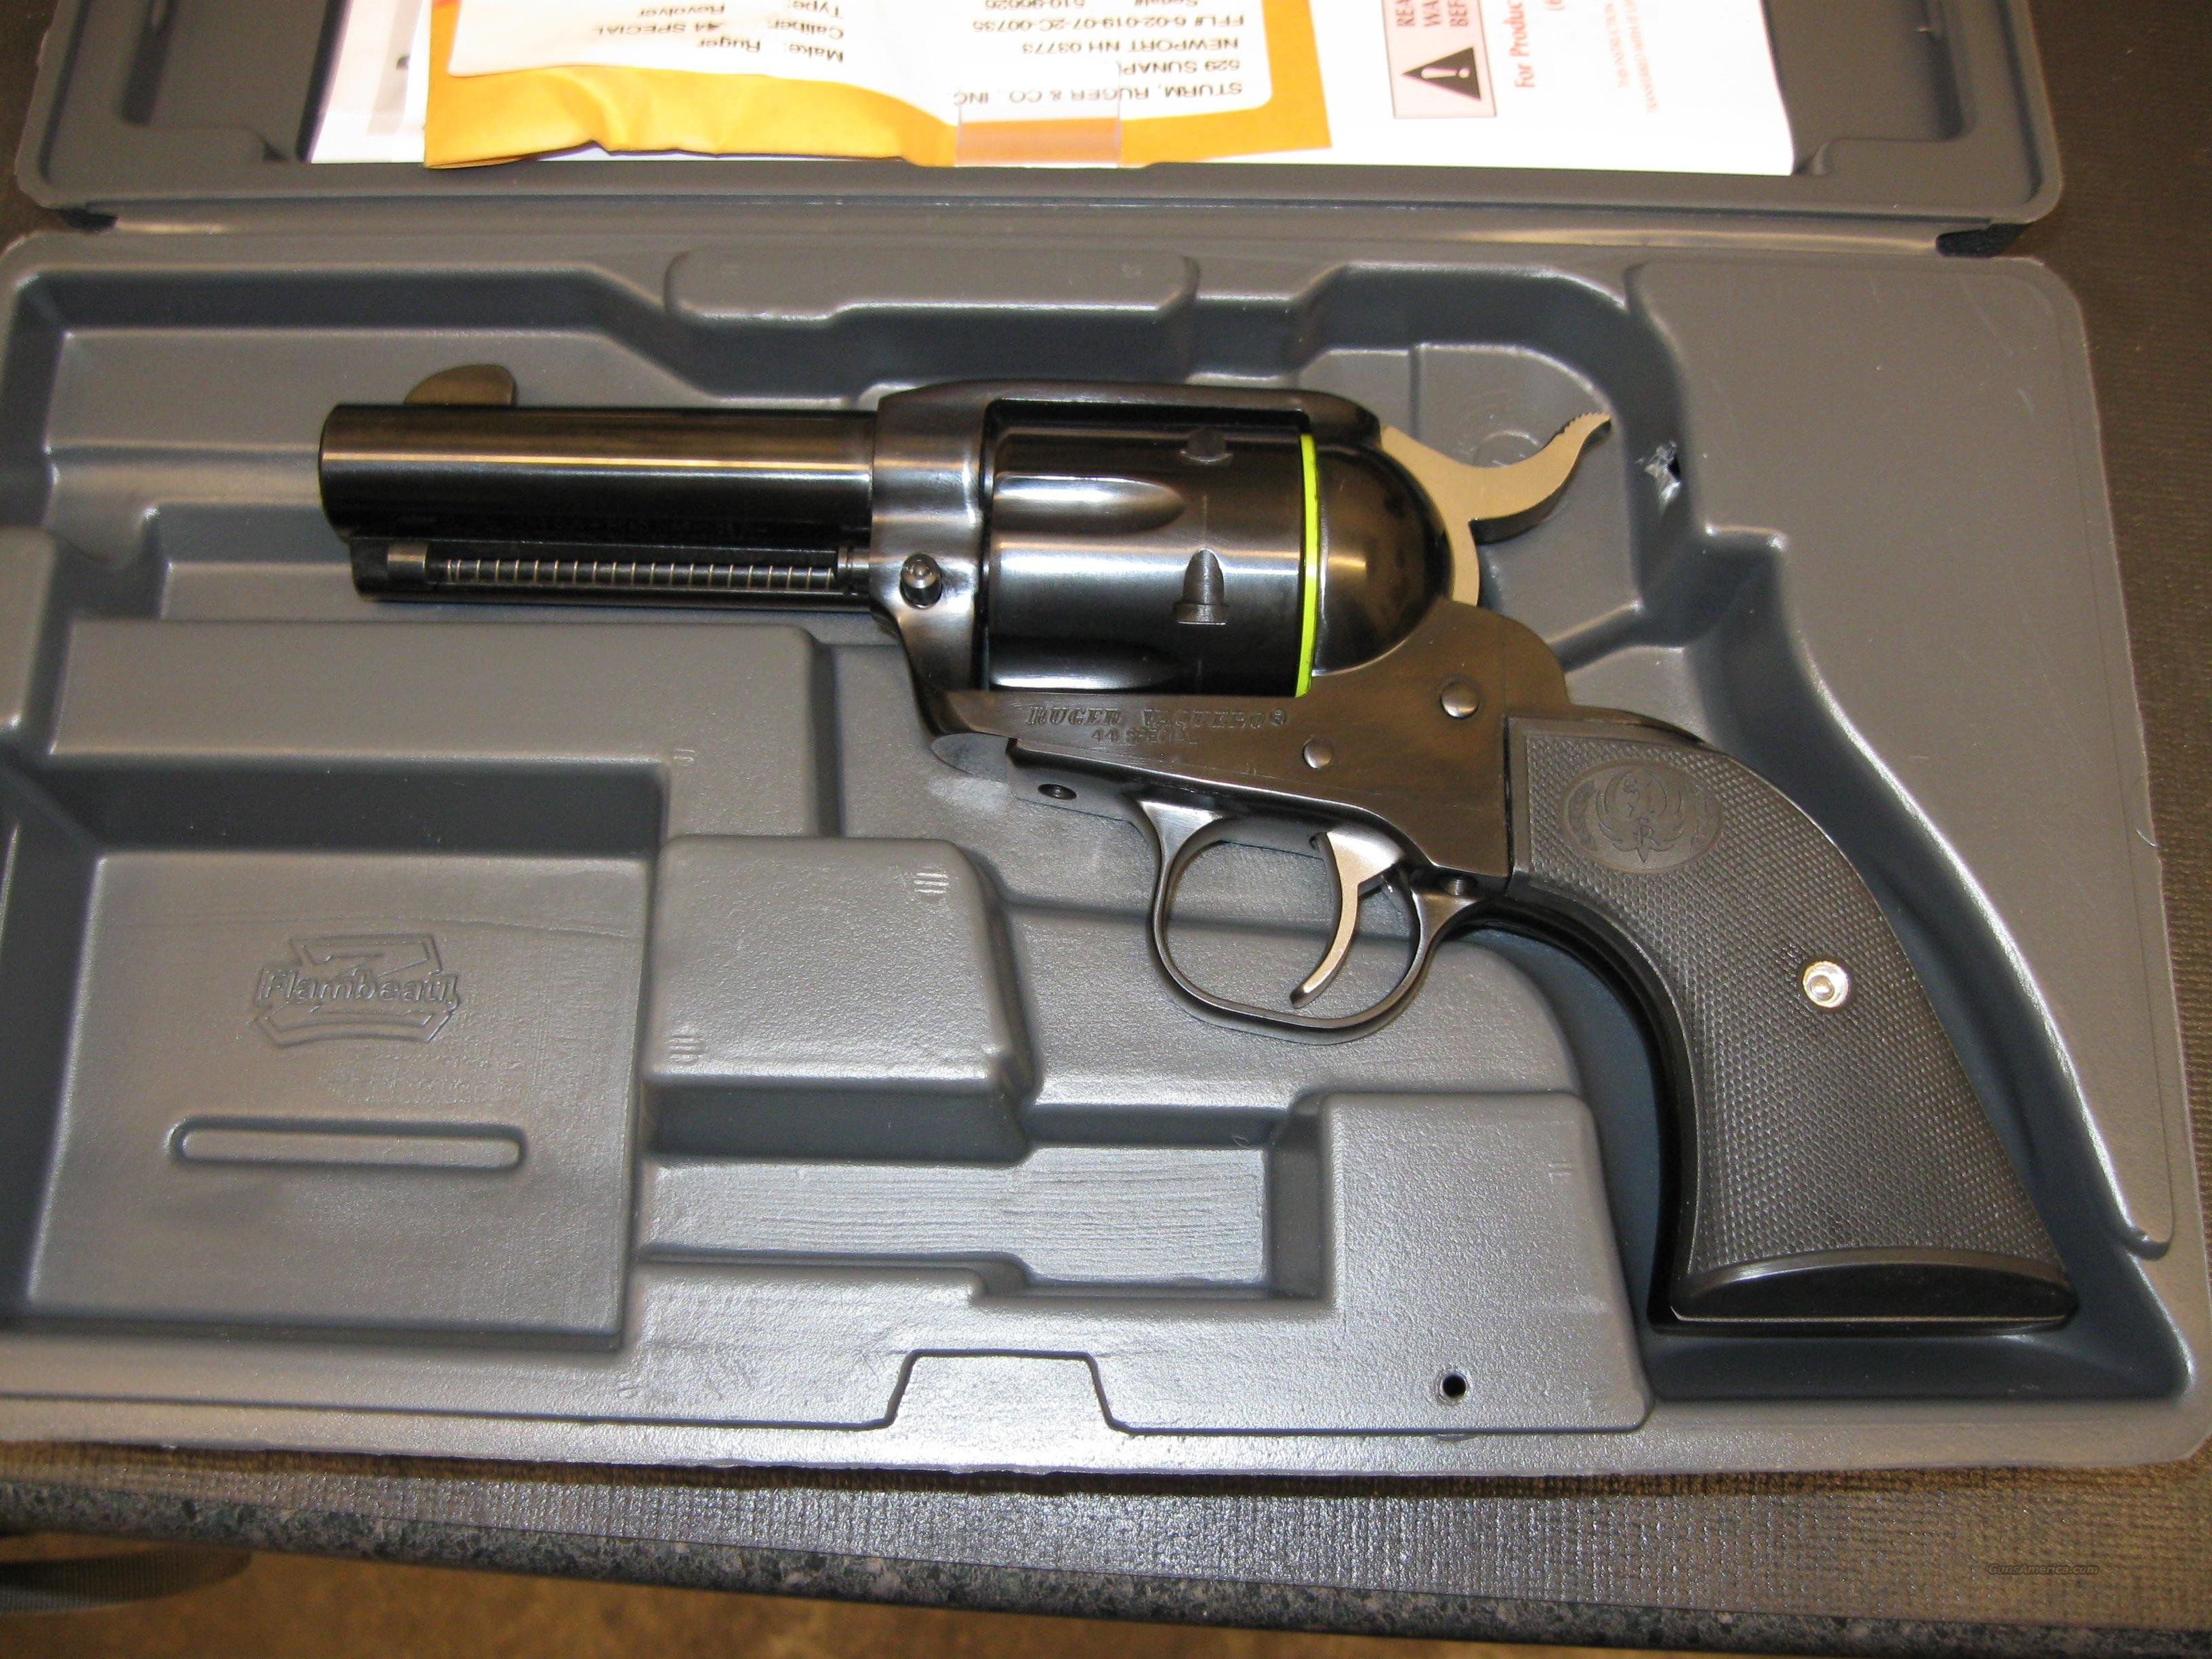 Ruger Vaquero Sheriff's NV-443 (5146) .44 special   Guns > Pistols > Ruger Single Action Revolvers > Single Six Type